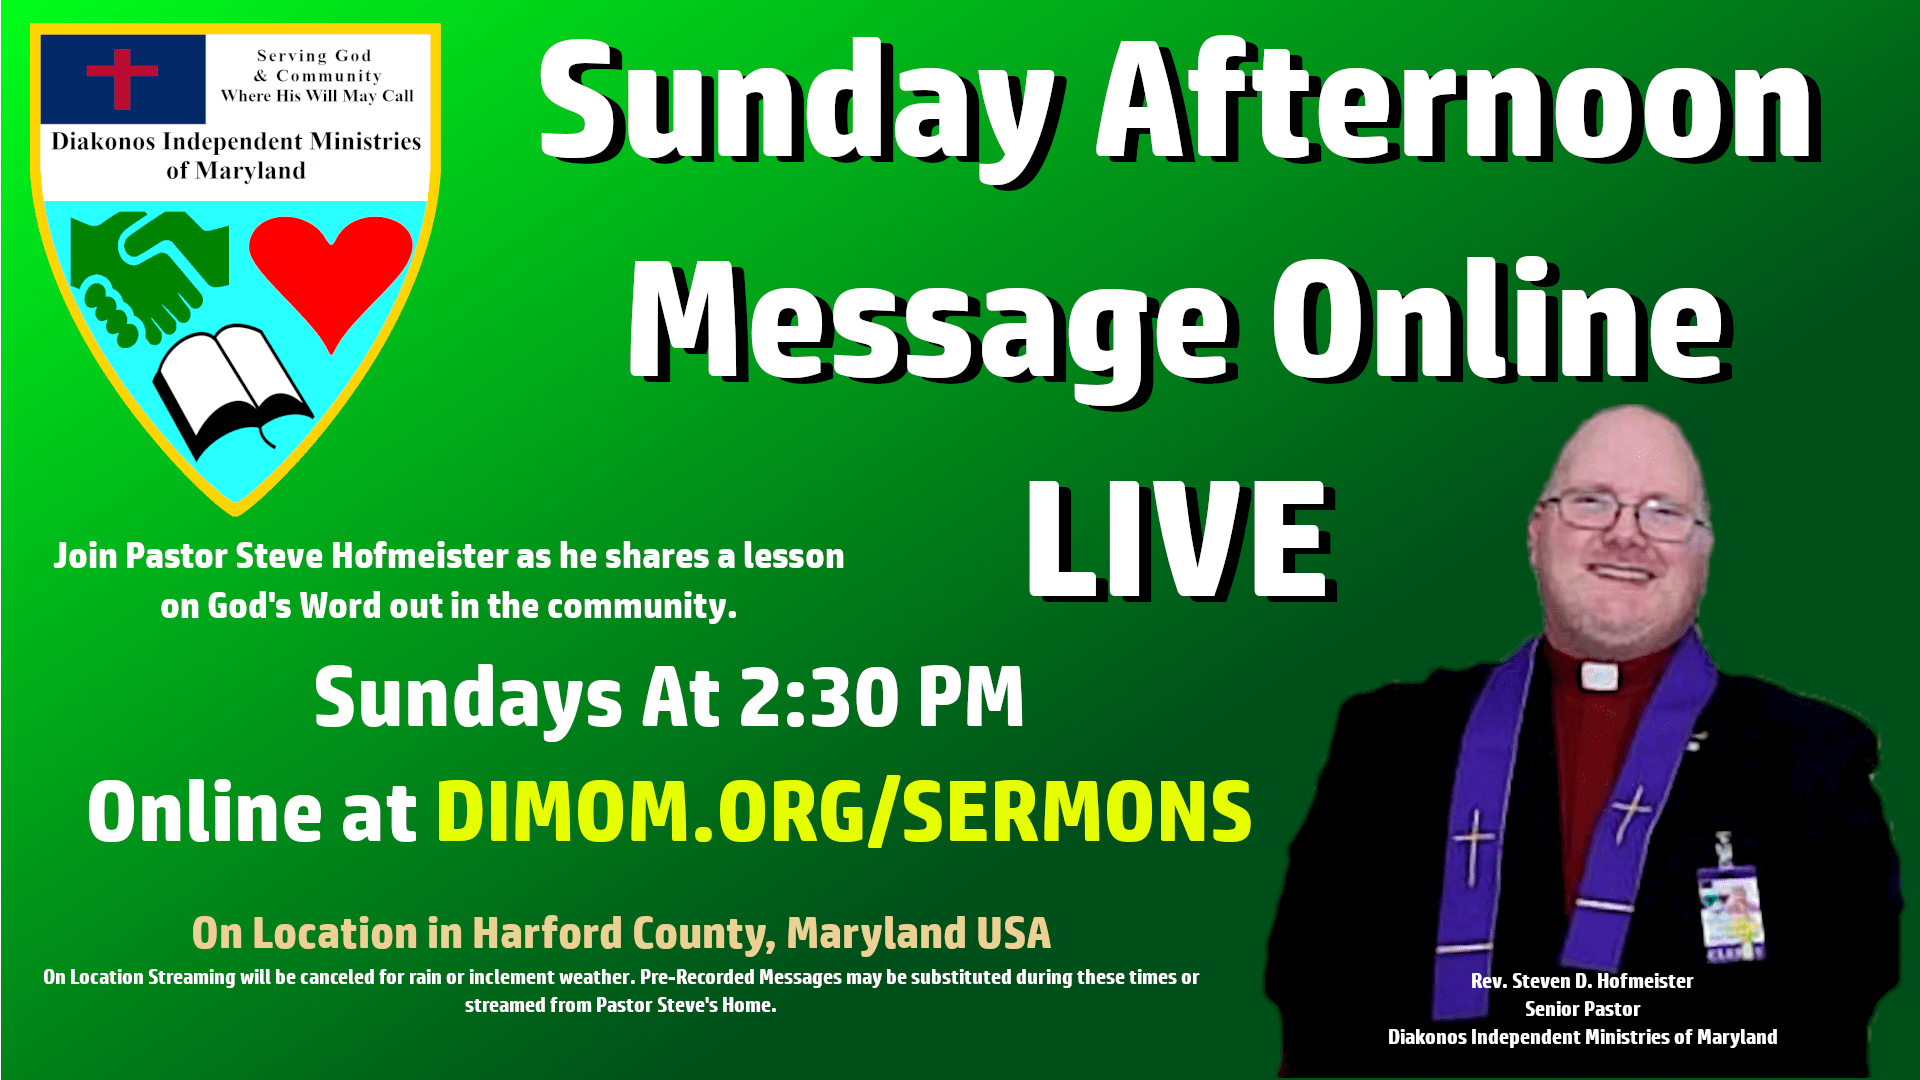 Sunday Afternoon Message - Sundays at 2:00 PM Eastern Time, join us at dimom.org/sermons